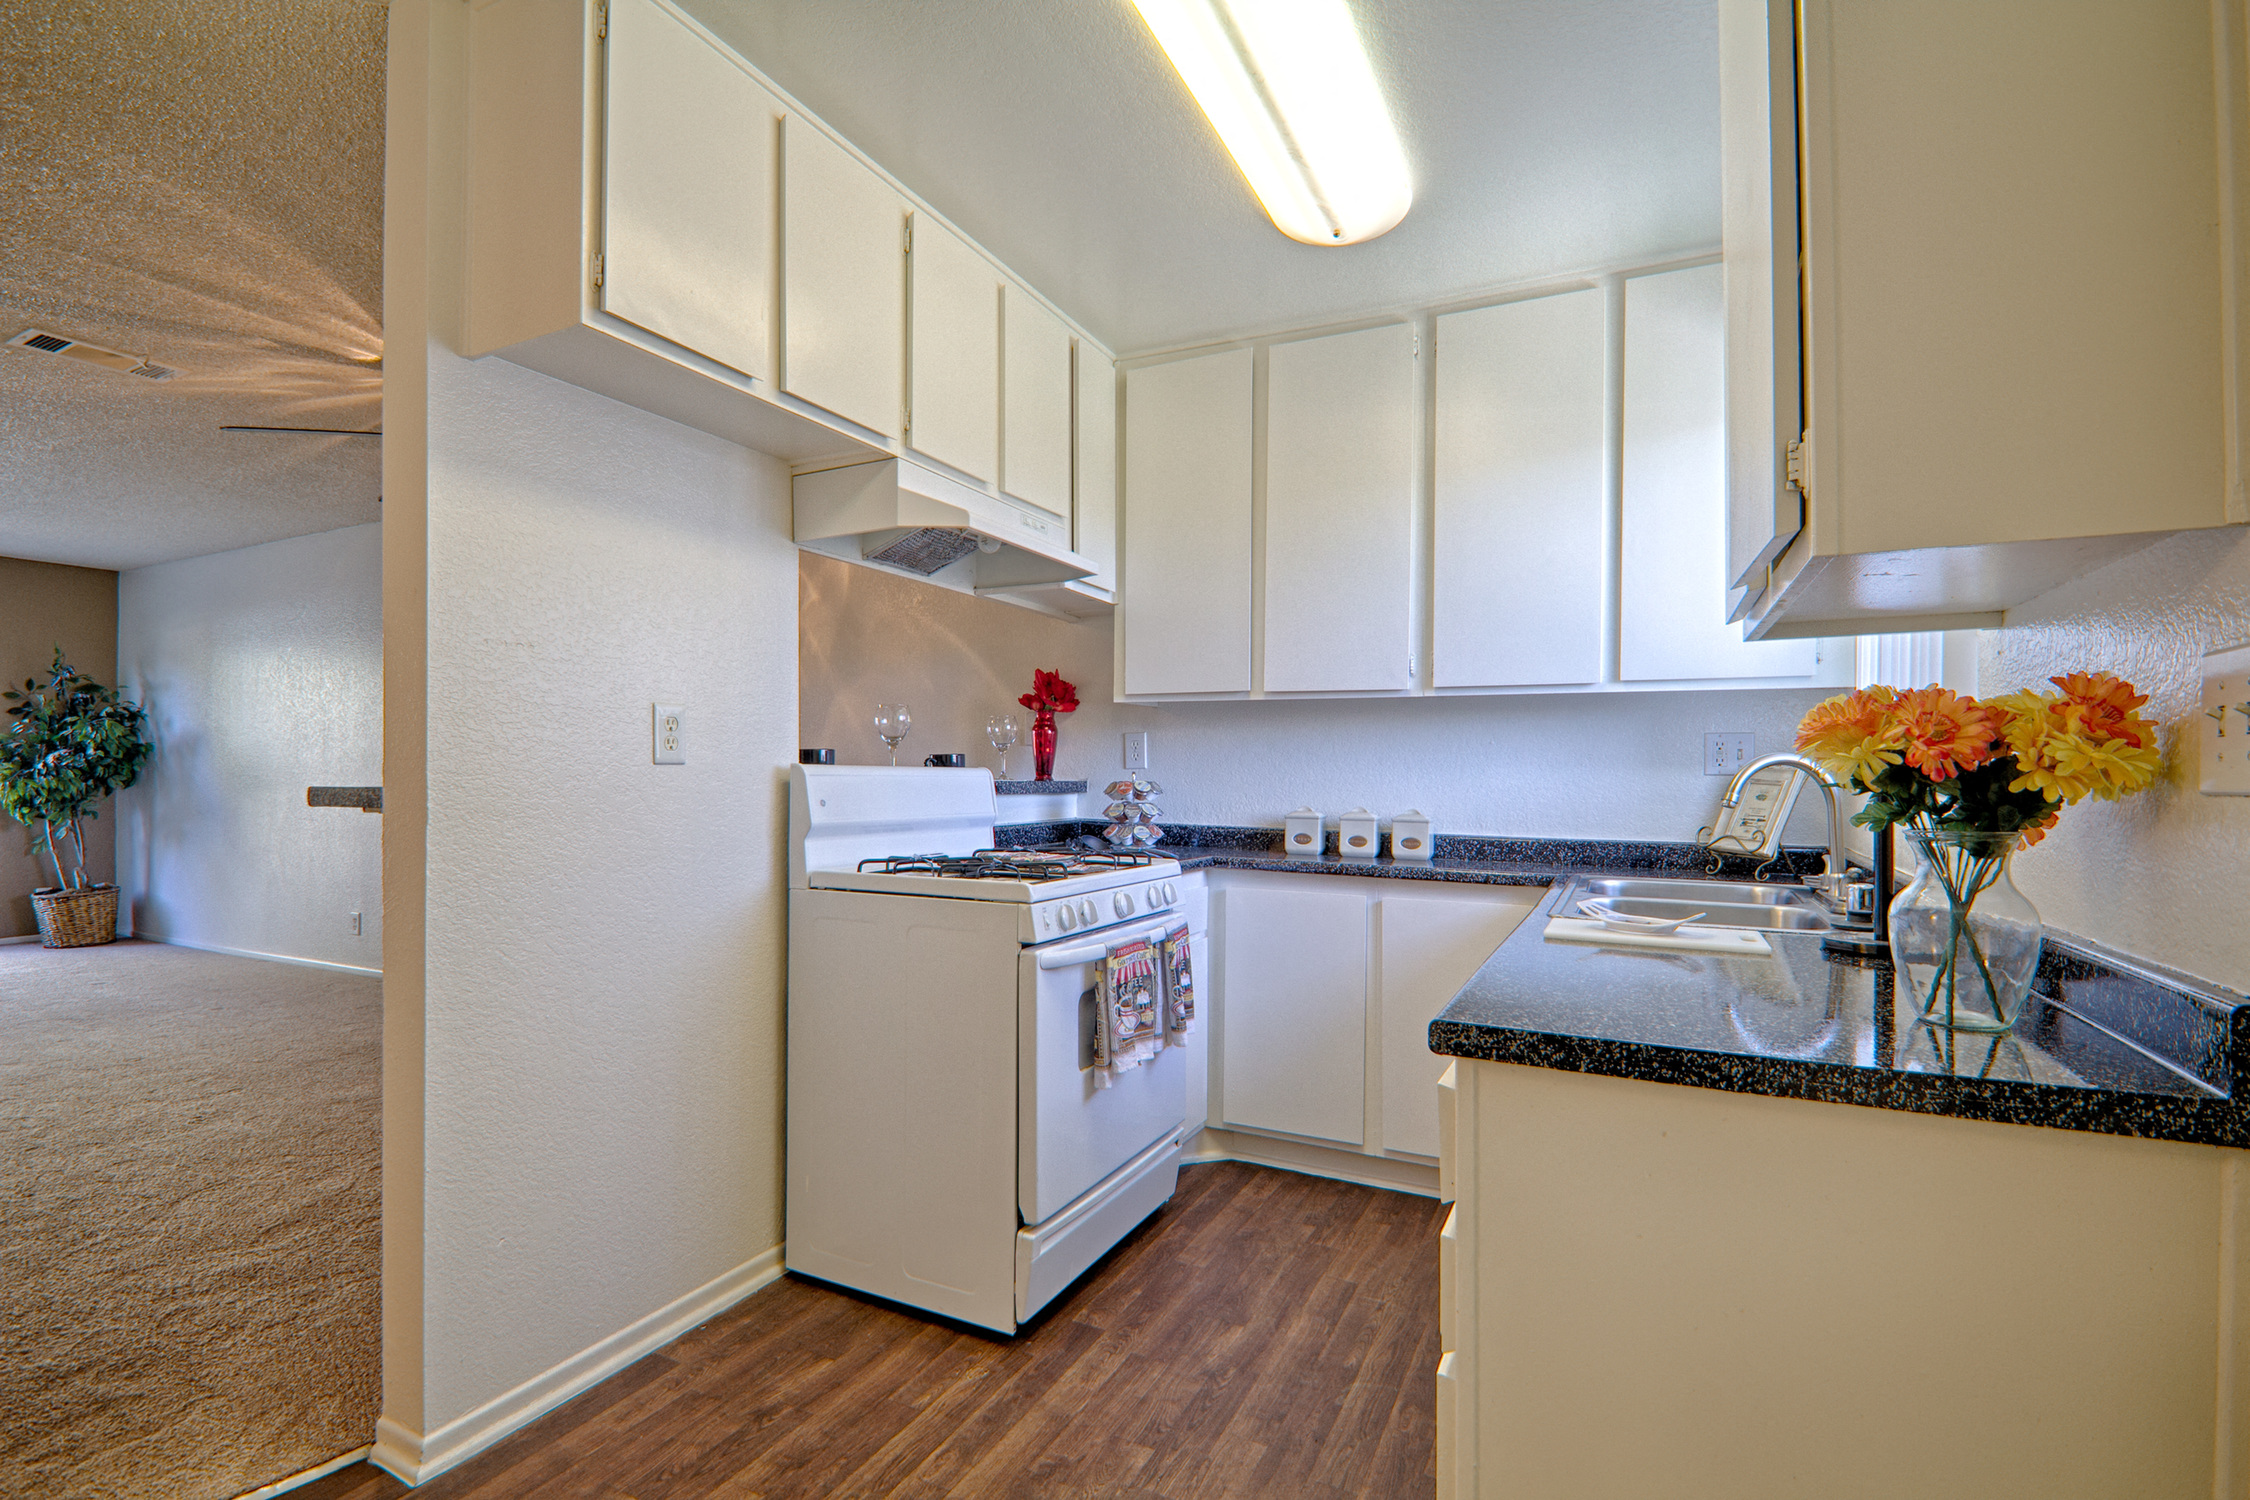 Full Kitchen at Woodlands West Townhomes, Lancaster, CA,93536